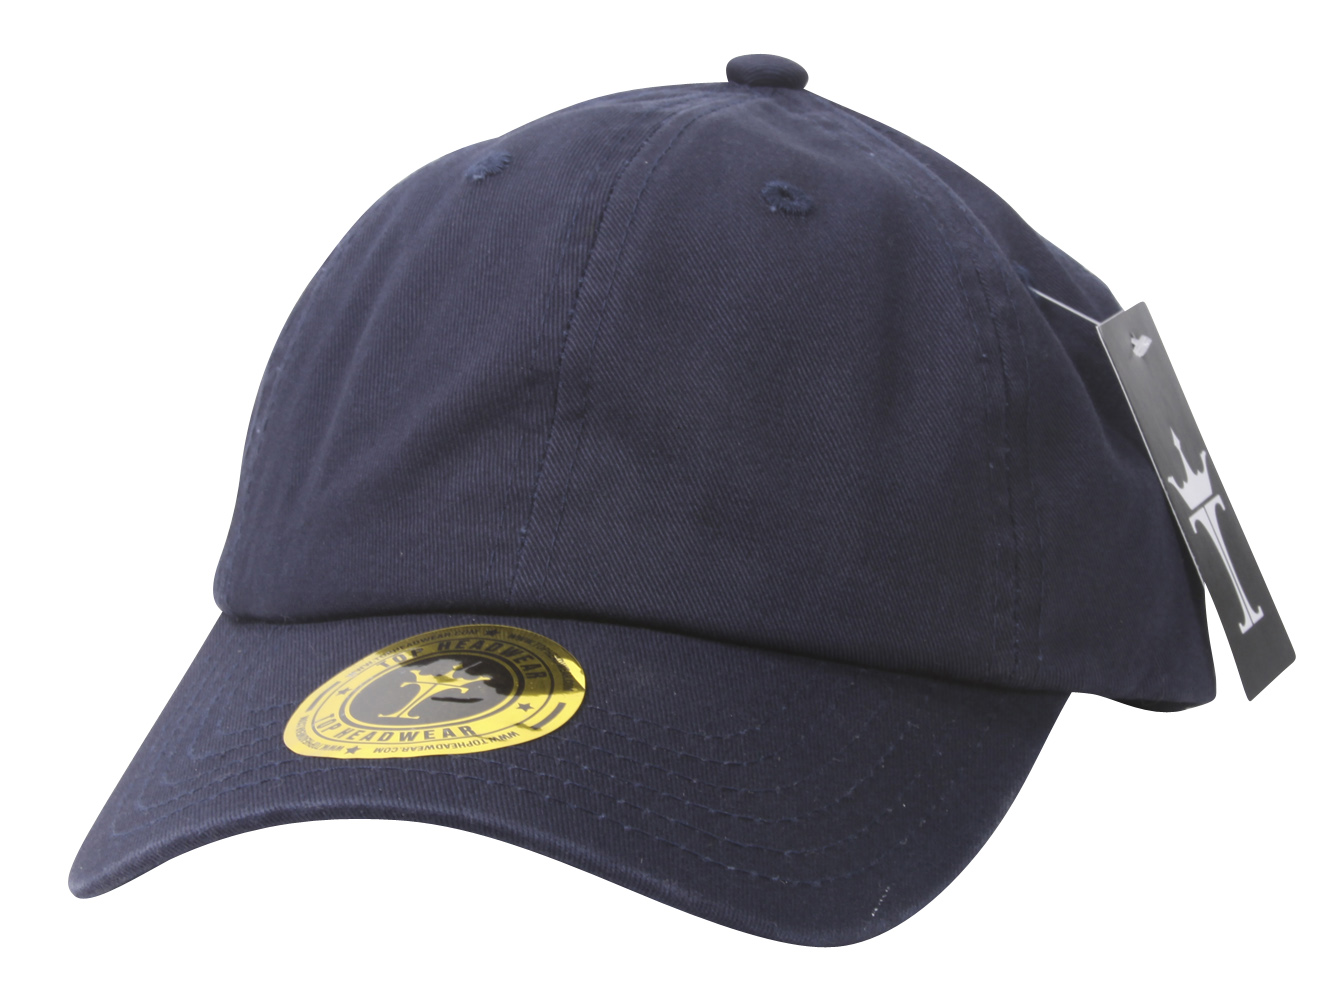 Low-Profile-Dyed-Cotton-Twill-Cap thumbnail 14